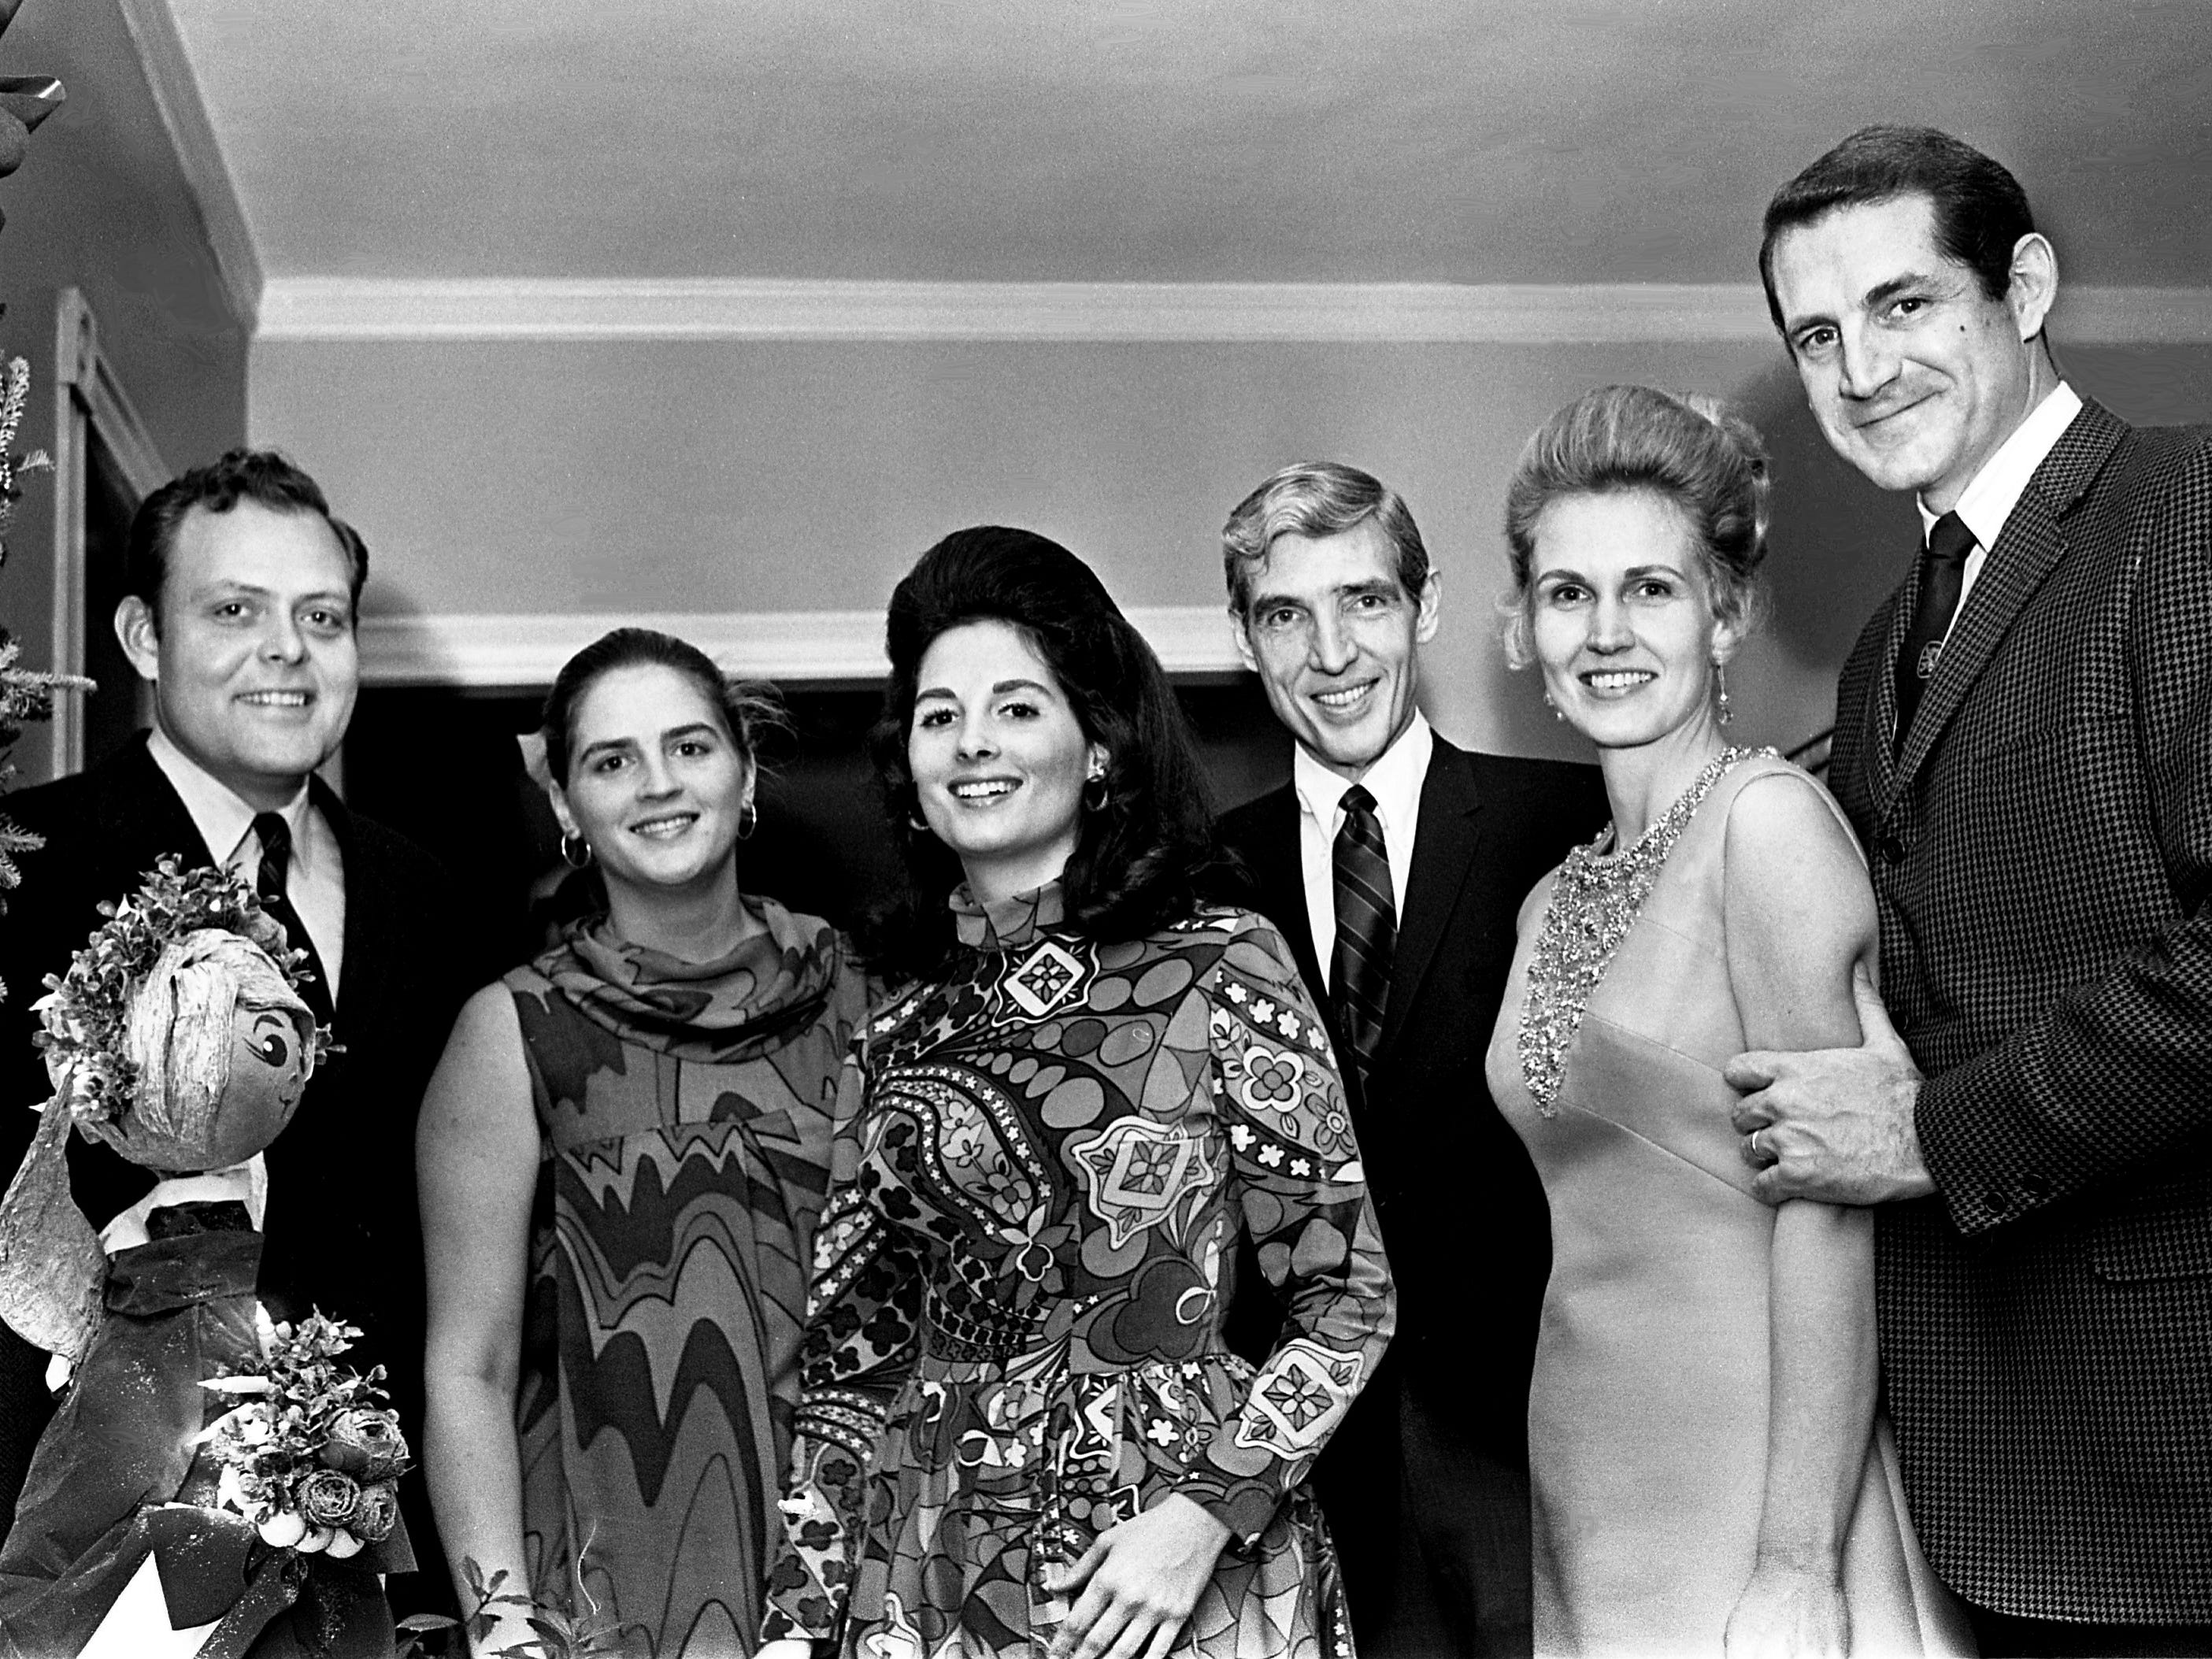 Host Tish Hooker, third from left, shares a moment with guests Mr. and Mrs. Gil Merritt, left, Thomas W. Steele, Mrs. and Mr. Stirton Oman as she and her husband John J. Hooker Jr. have a holiday party in the Belle Meade Apartment of his mother, Mrs. Darthula Hooker, Dec. 22, 1968. The Hookers are staying with his mother while their home on Chickering Lane is under construction.